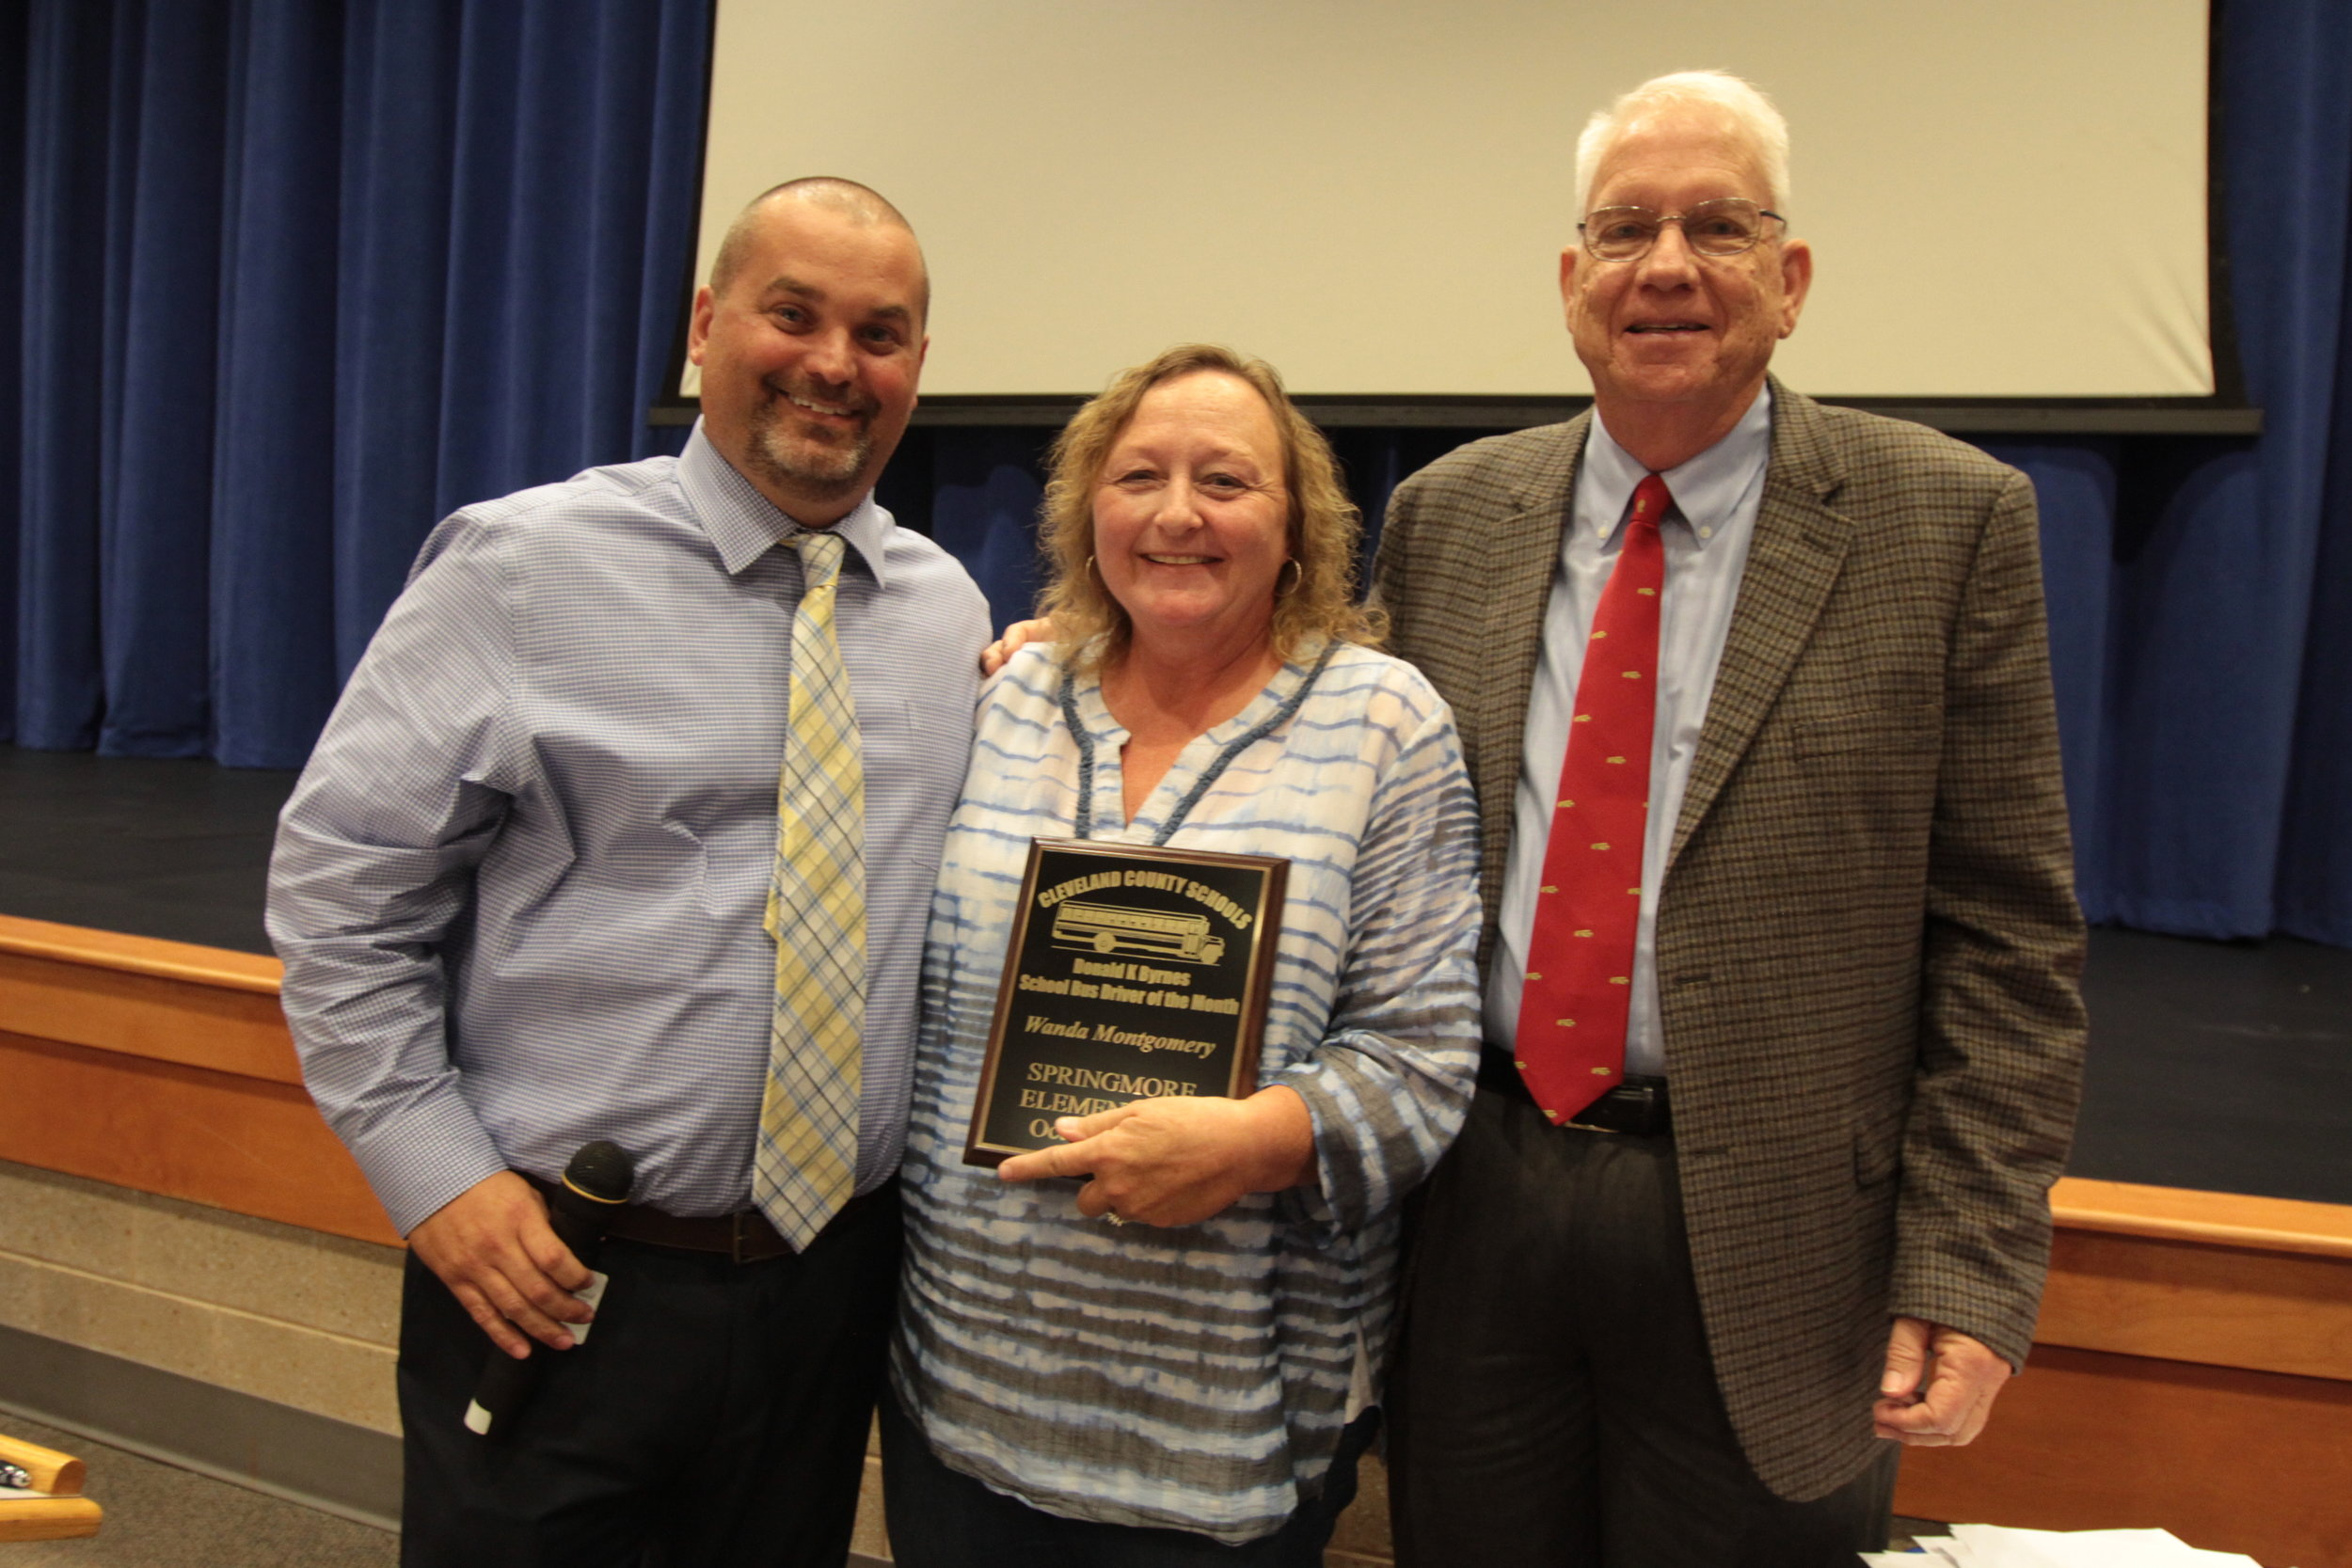 Pictured left-to-right: Transportation Director David Pless, 2019 Bus Driver of the Year Wanda Montgomery, and Retired Transportation Director Donald K. Byrnes